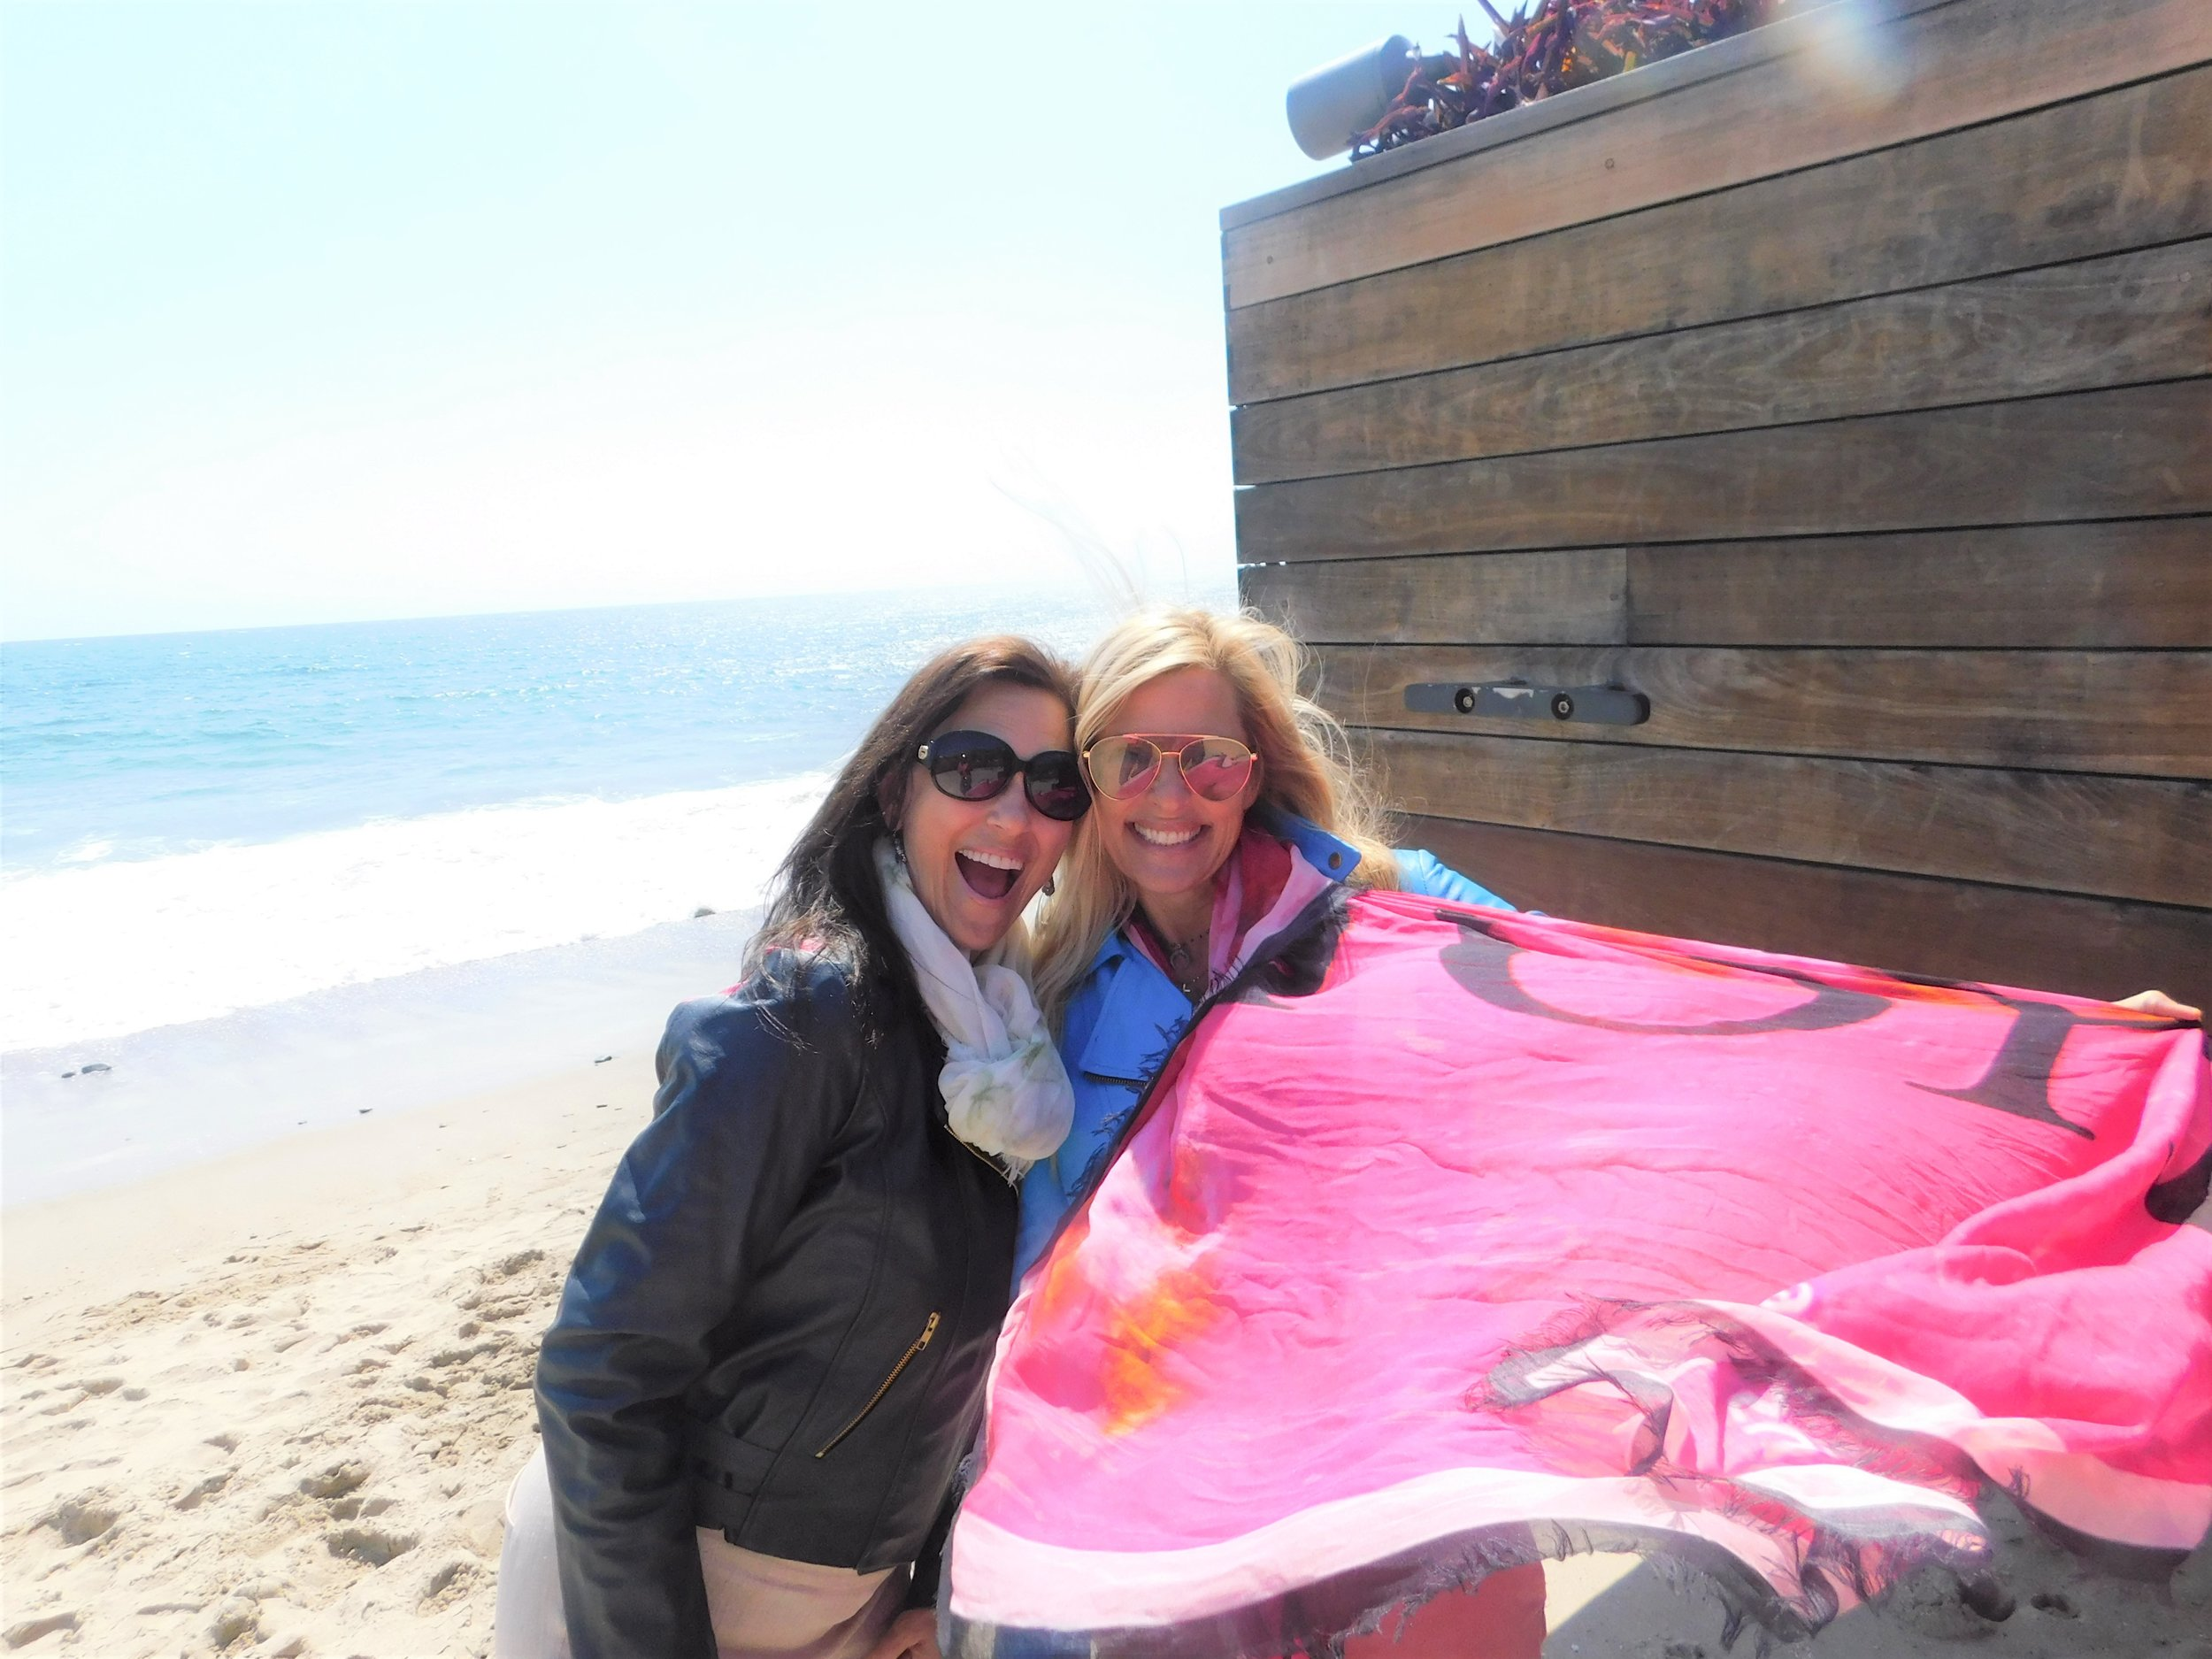 """"""" I FEEL THE PRESENCE IN THE PROMISE OF LOVE AND LIGHT IN MY LOVE'S PURE LIGHT LUXURY SHAWL"""" Anonymous, Malibu, CA"""